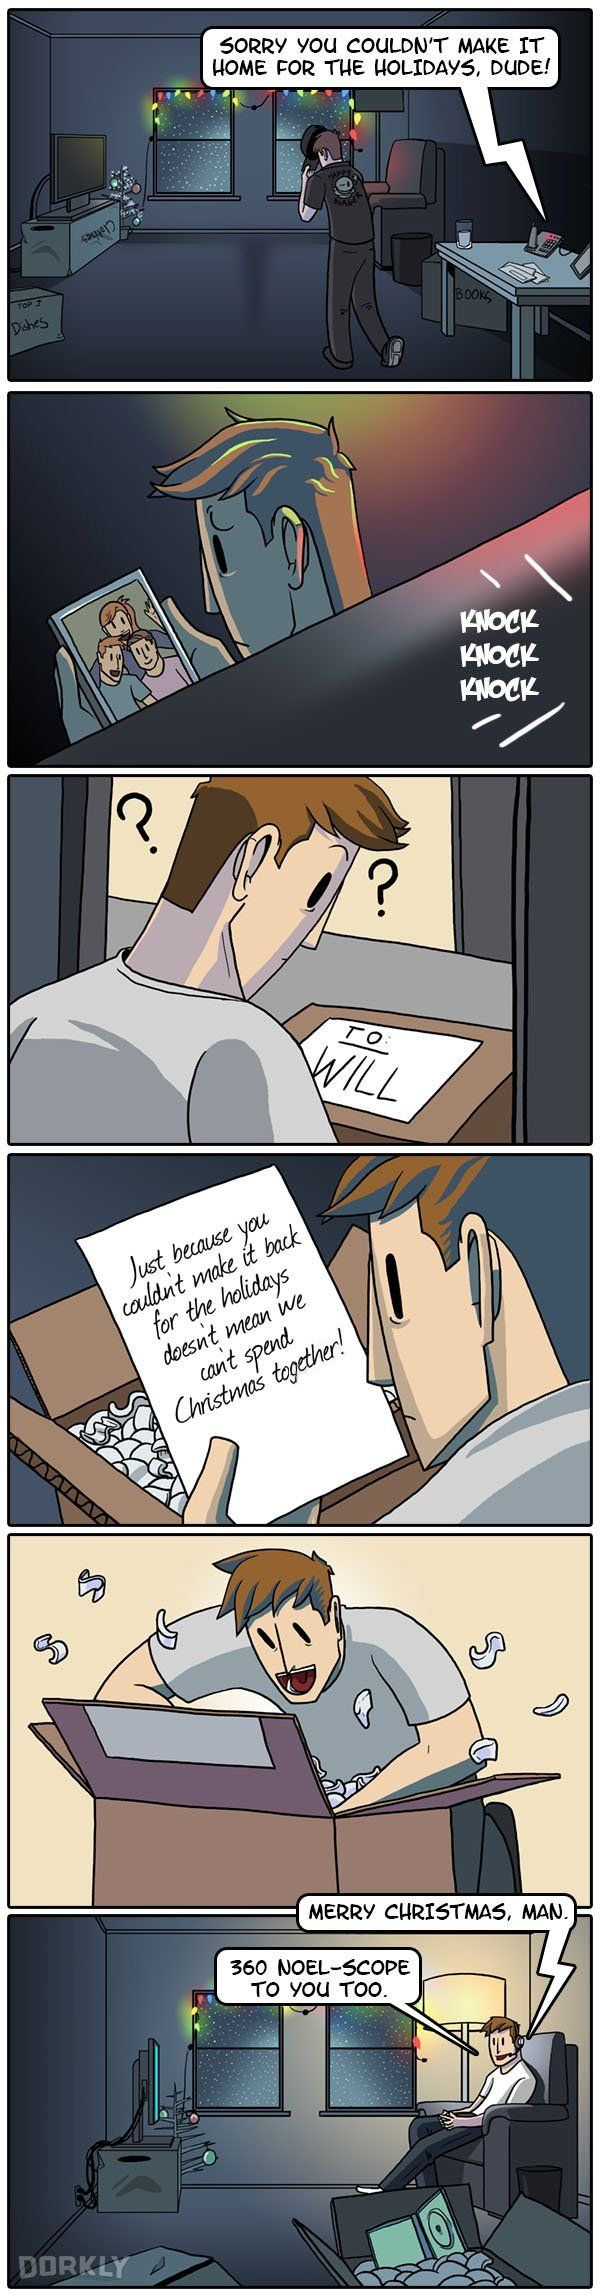 """""""The Greatest Gift of All"""" #dorkly #geek #comics"""